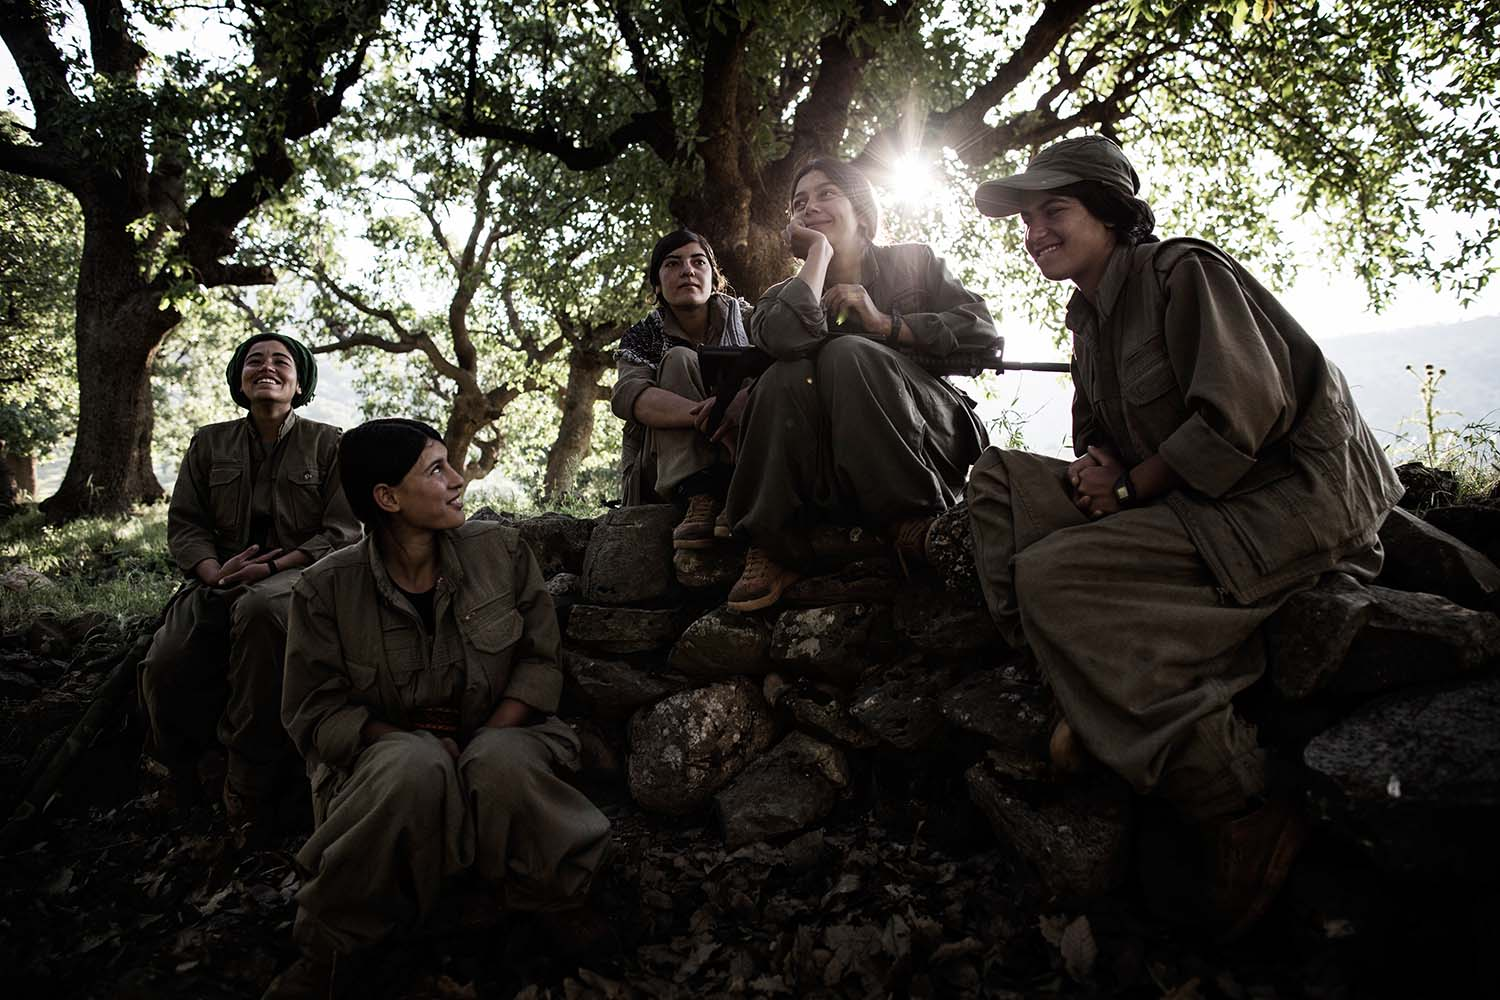 PKK fighters protecting the Qandil mountains and living their life there. Nuhal, Sozan, Tajin, Beitar, Arin.